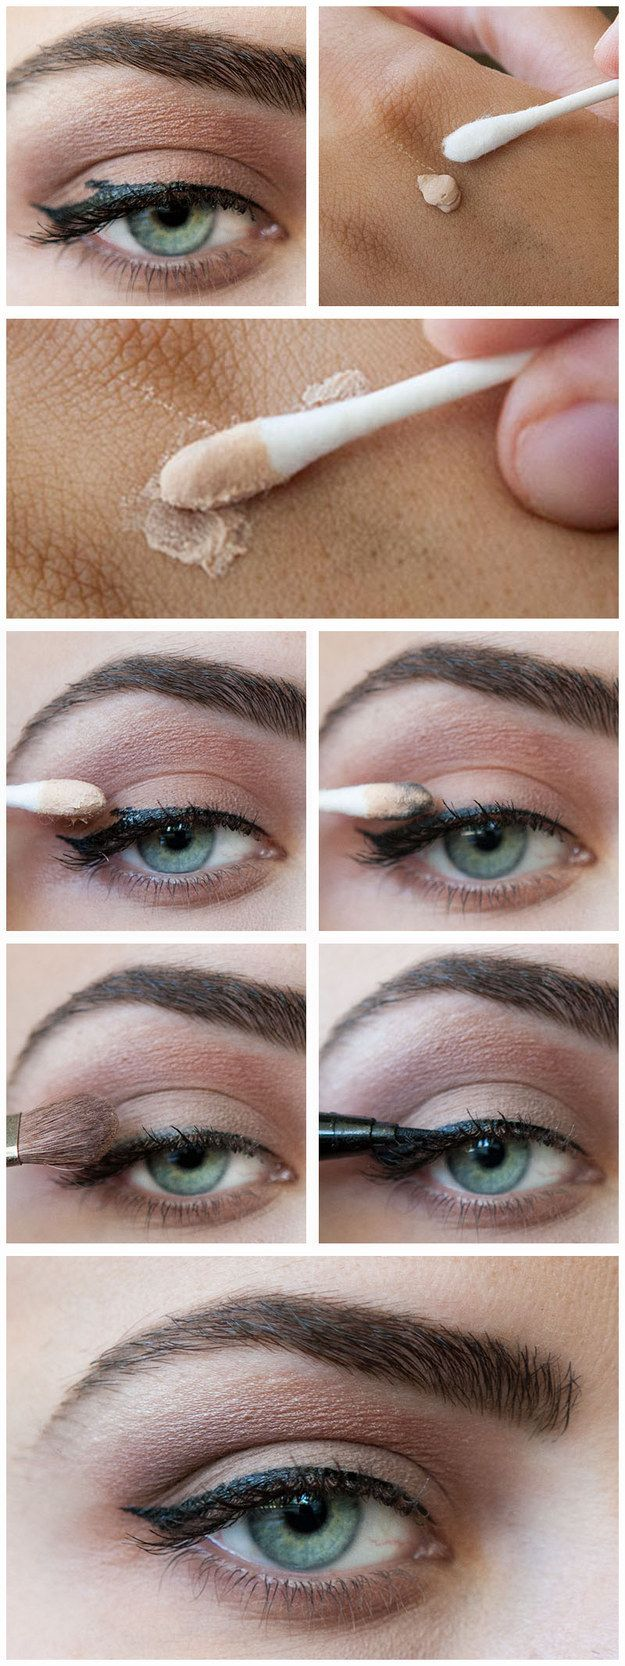 A dab of primer or concealer can work wonders for fixing smudges.